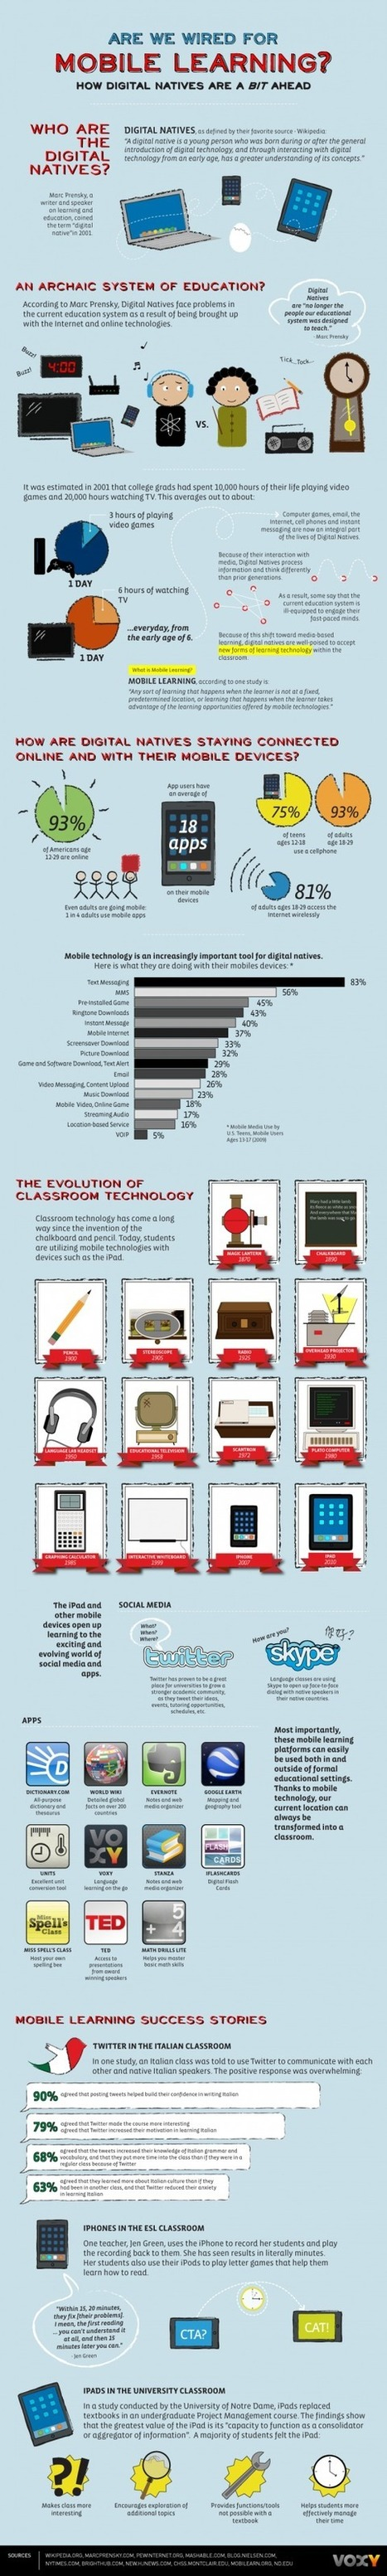 Is Mobile Learning in our DNA? [INFOGRAPHIC] | LearnDash | Create, Innovate & Evaluate in Higher Education | Scoop.it